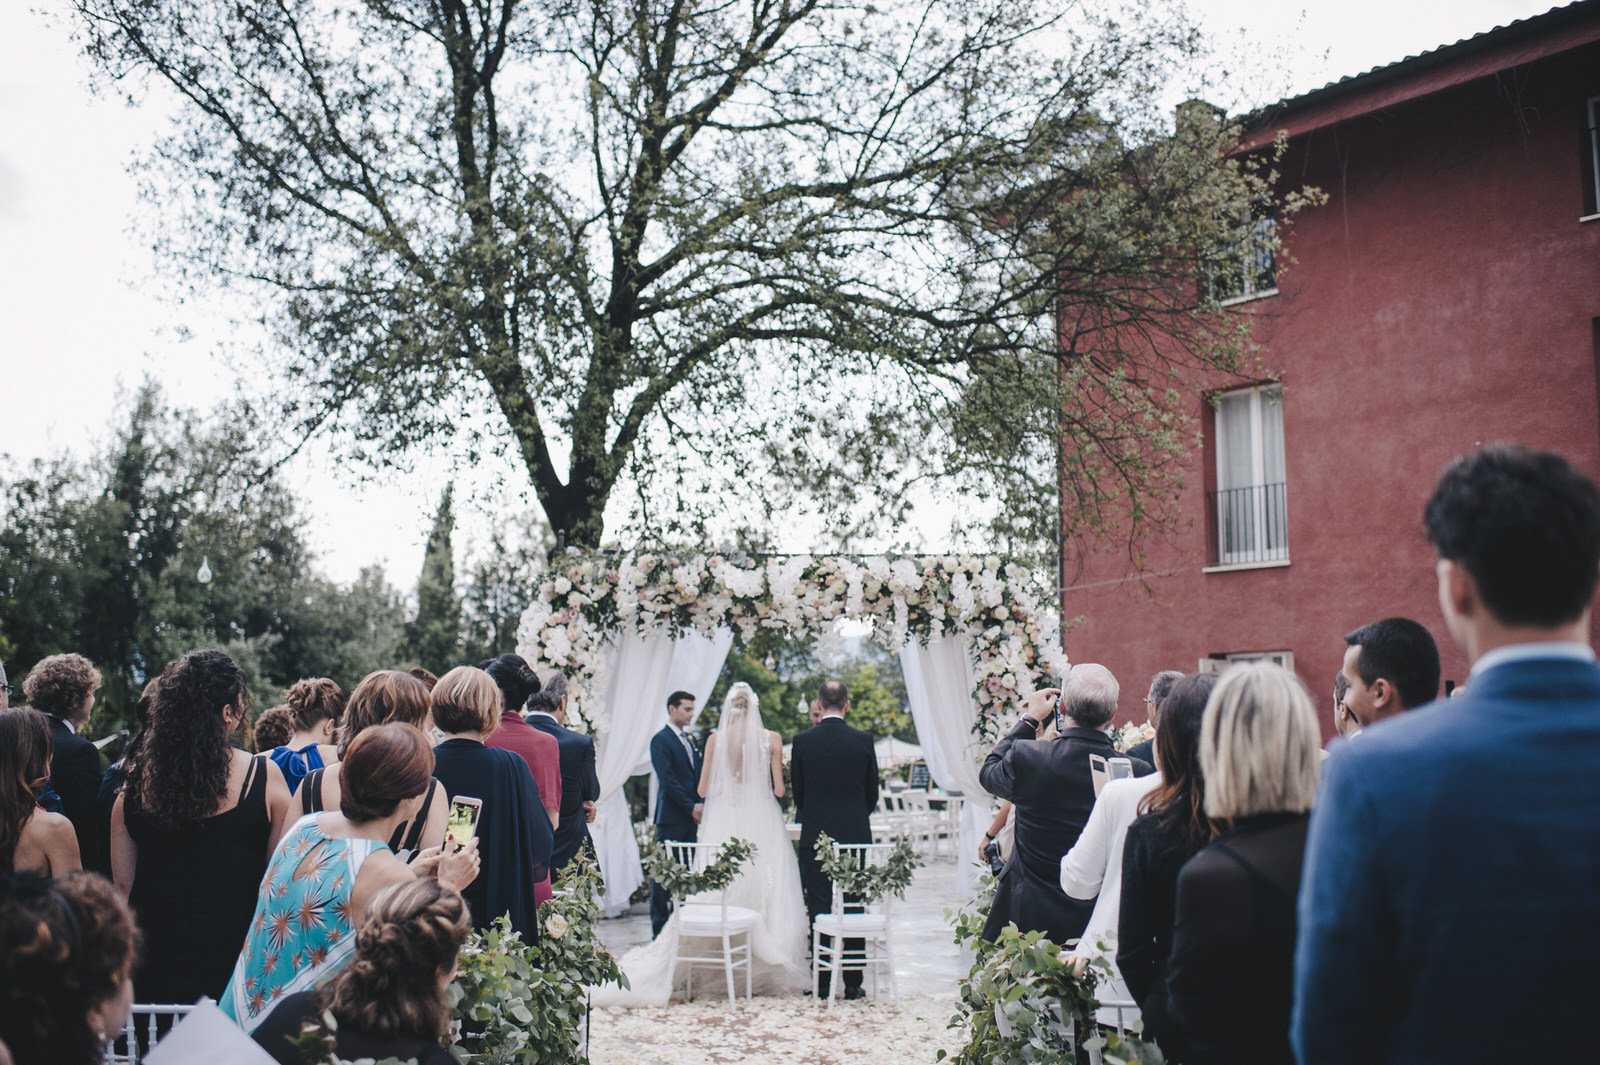 view of the wedding ceremony setting